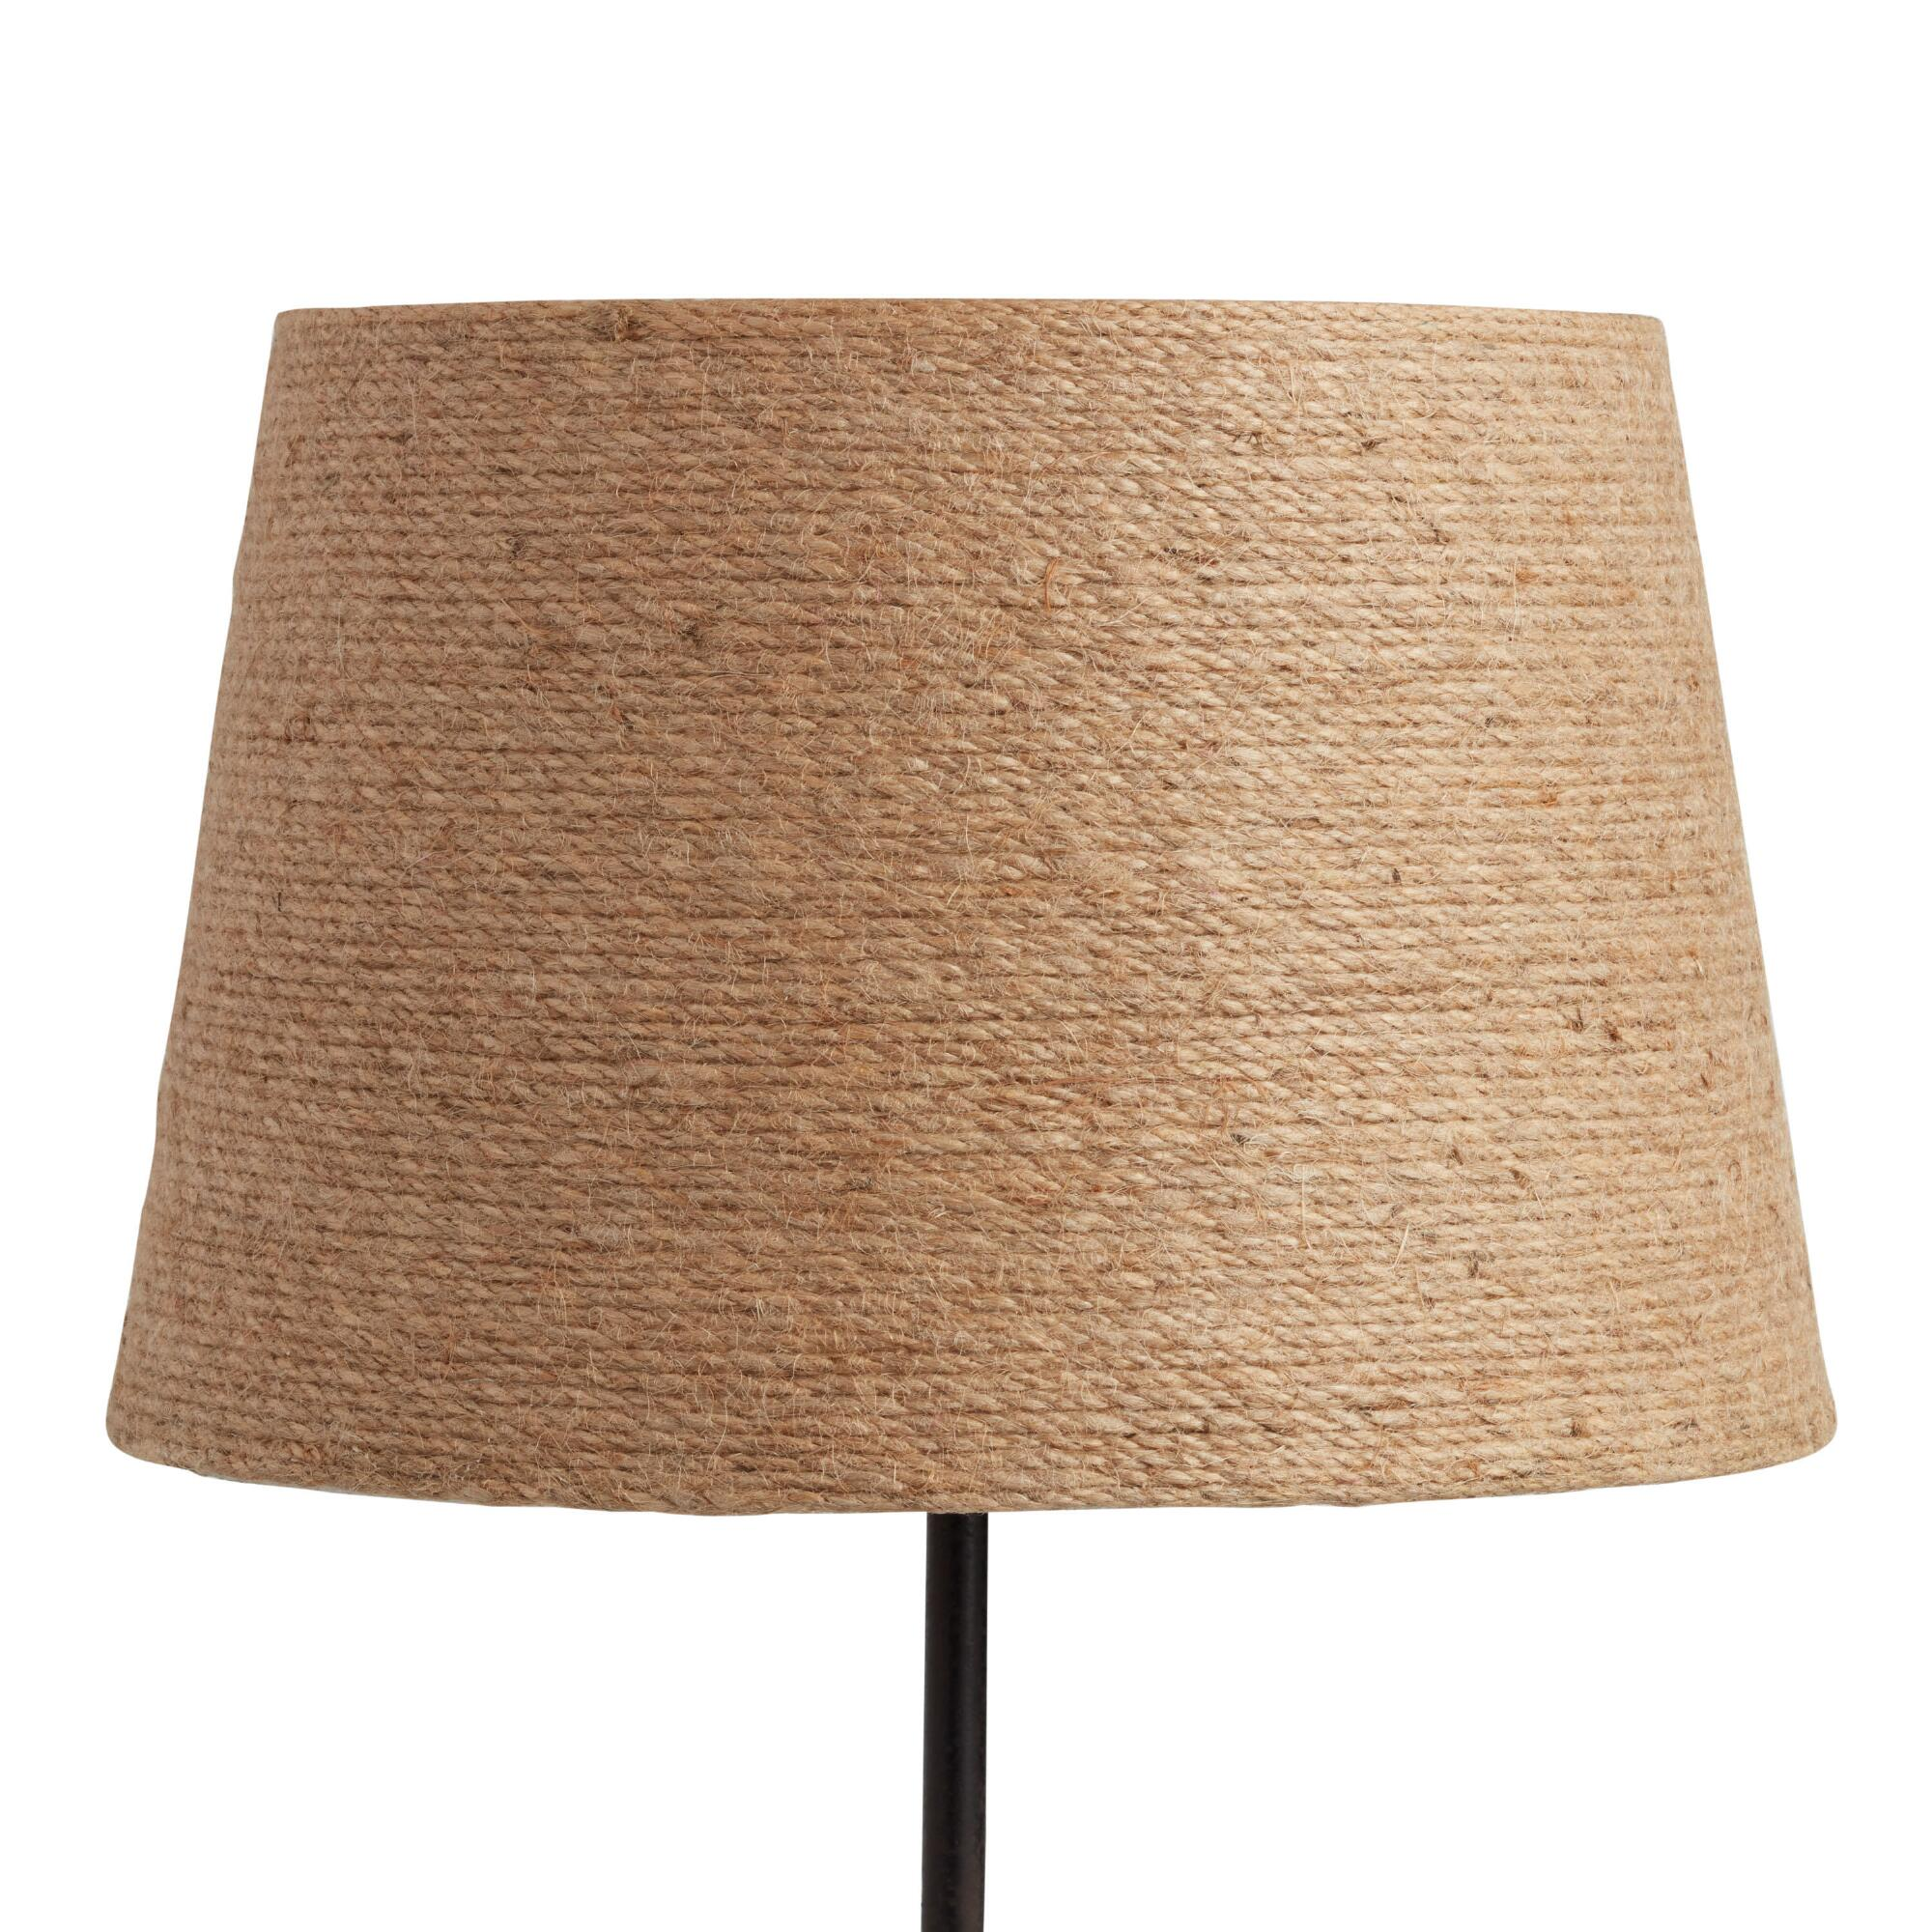 gallery of where to buy lamp shades. Black Bedroom Furniture Sets. Home Design Ideas